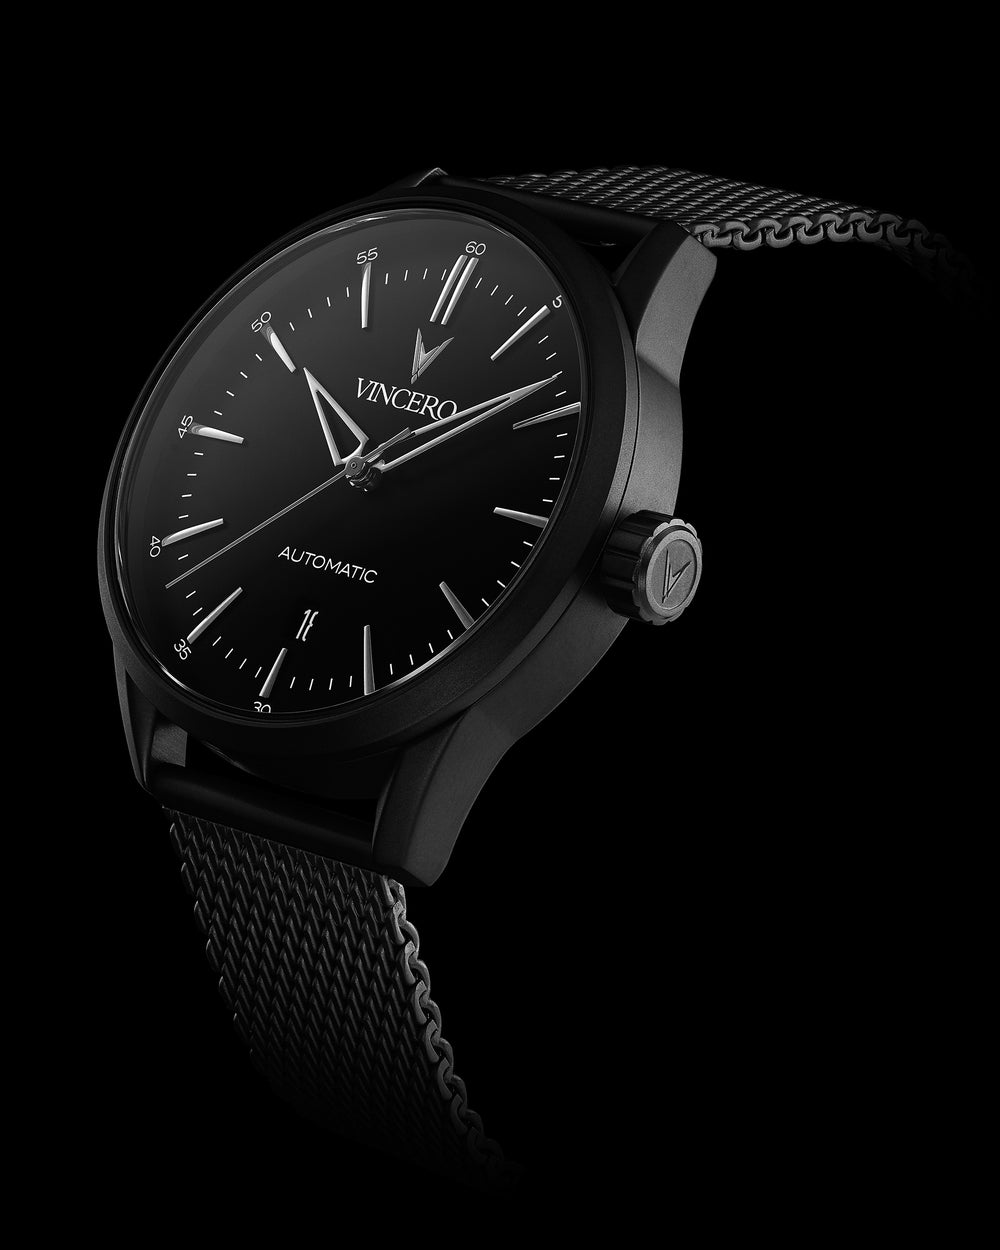 Icon Automatic Black 316L Stainless Steel Mesh Strap Black Watch Face Black Case Clasp Silver Accents